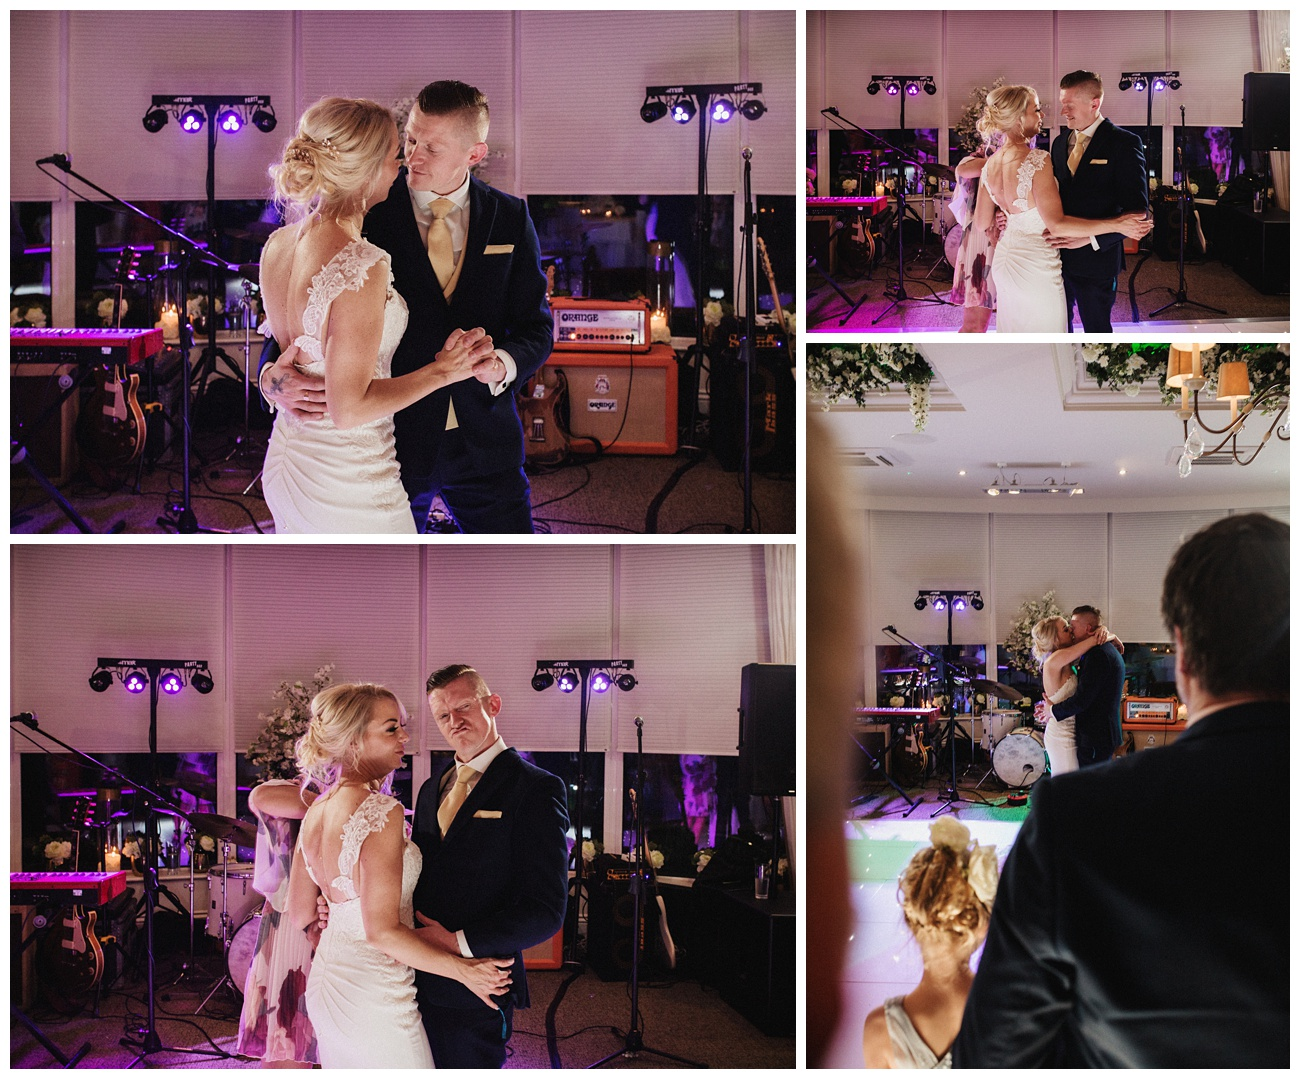 The bride and groom dance during their first dance